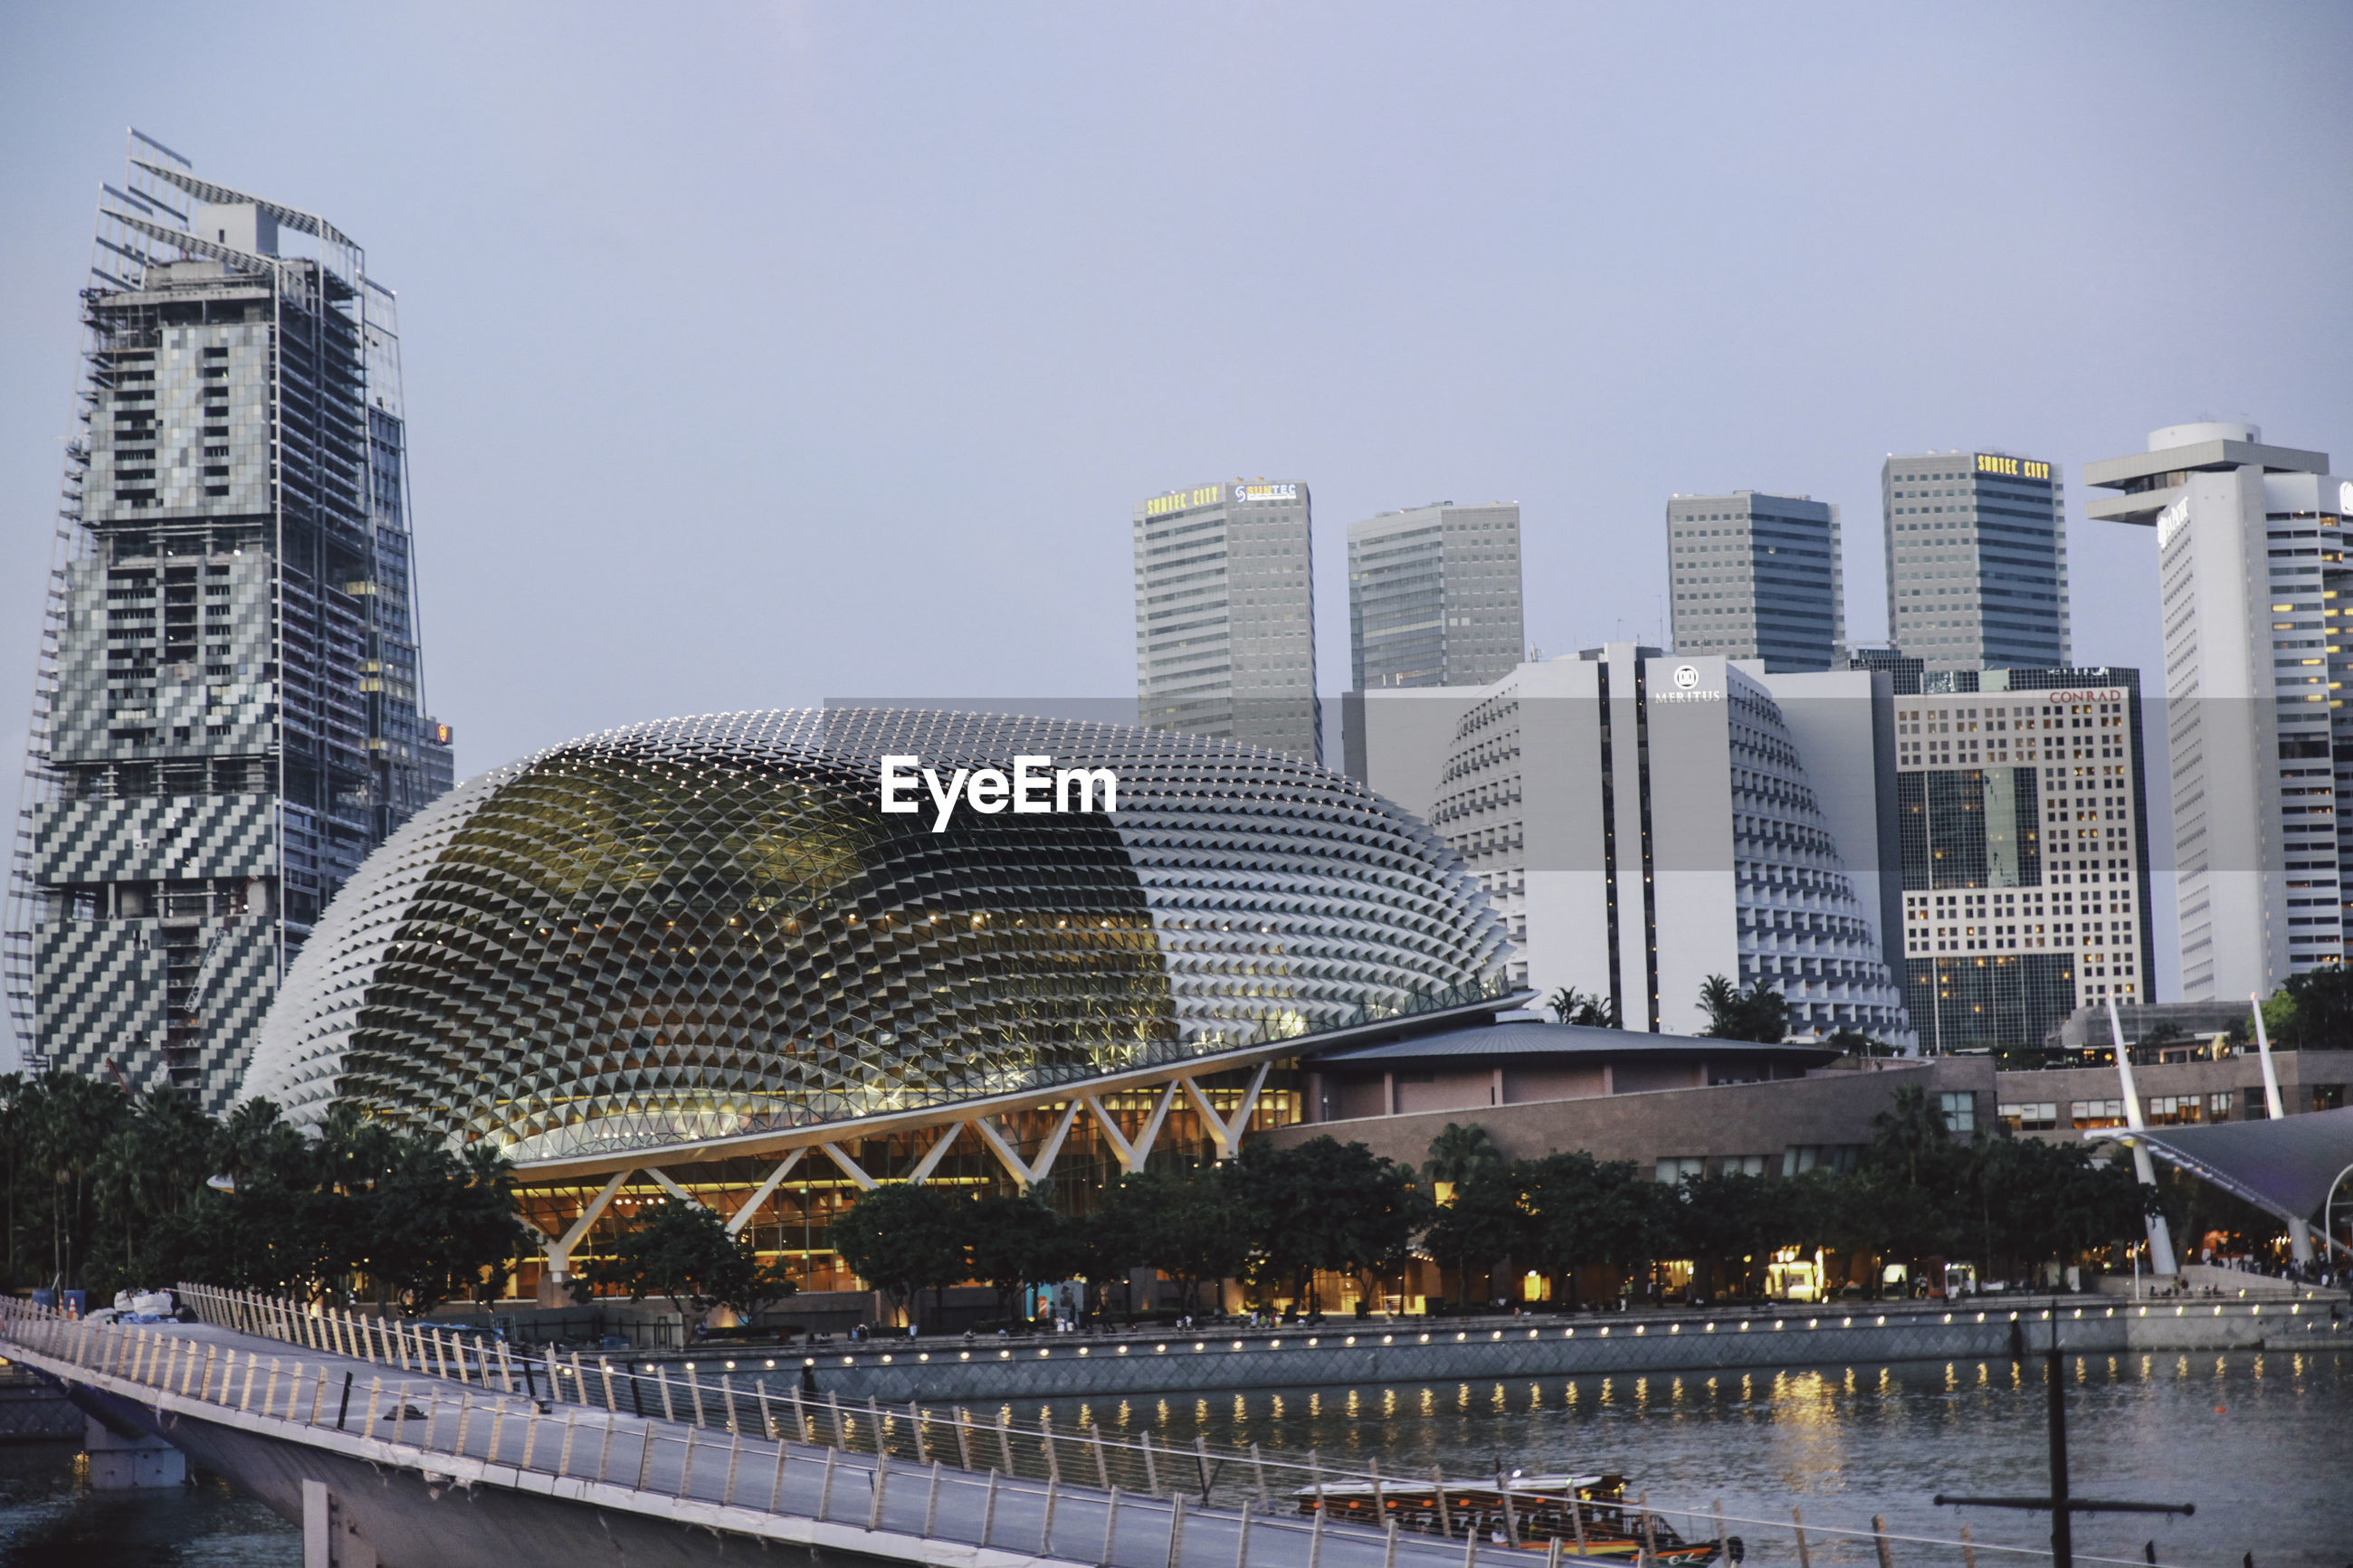 Esplanade theater in city by marina bay against sky